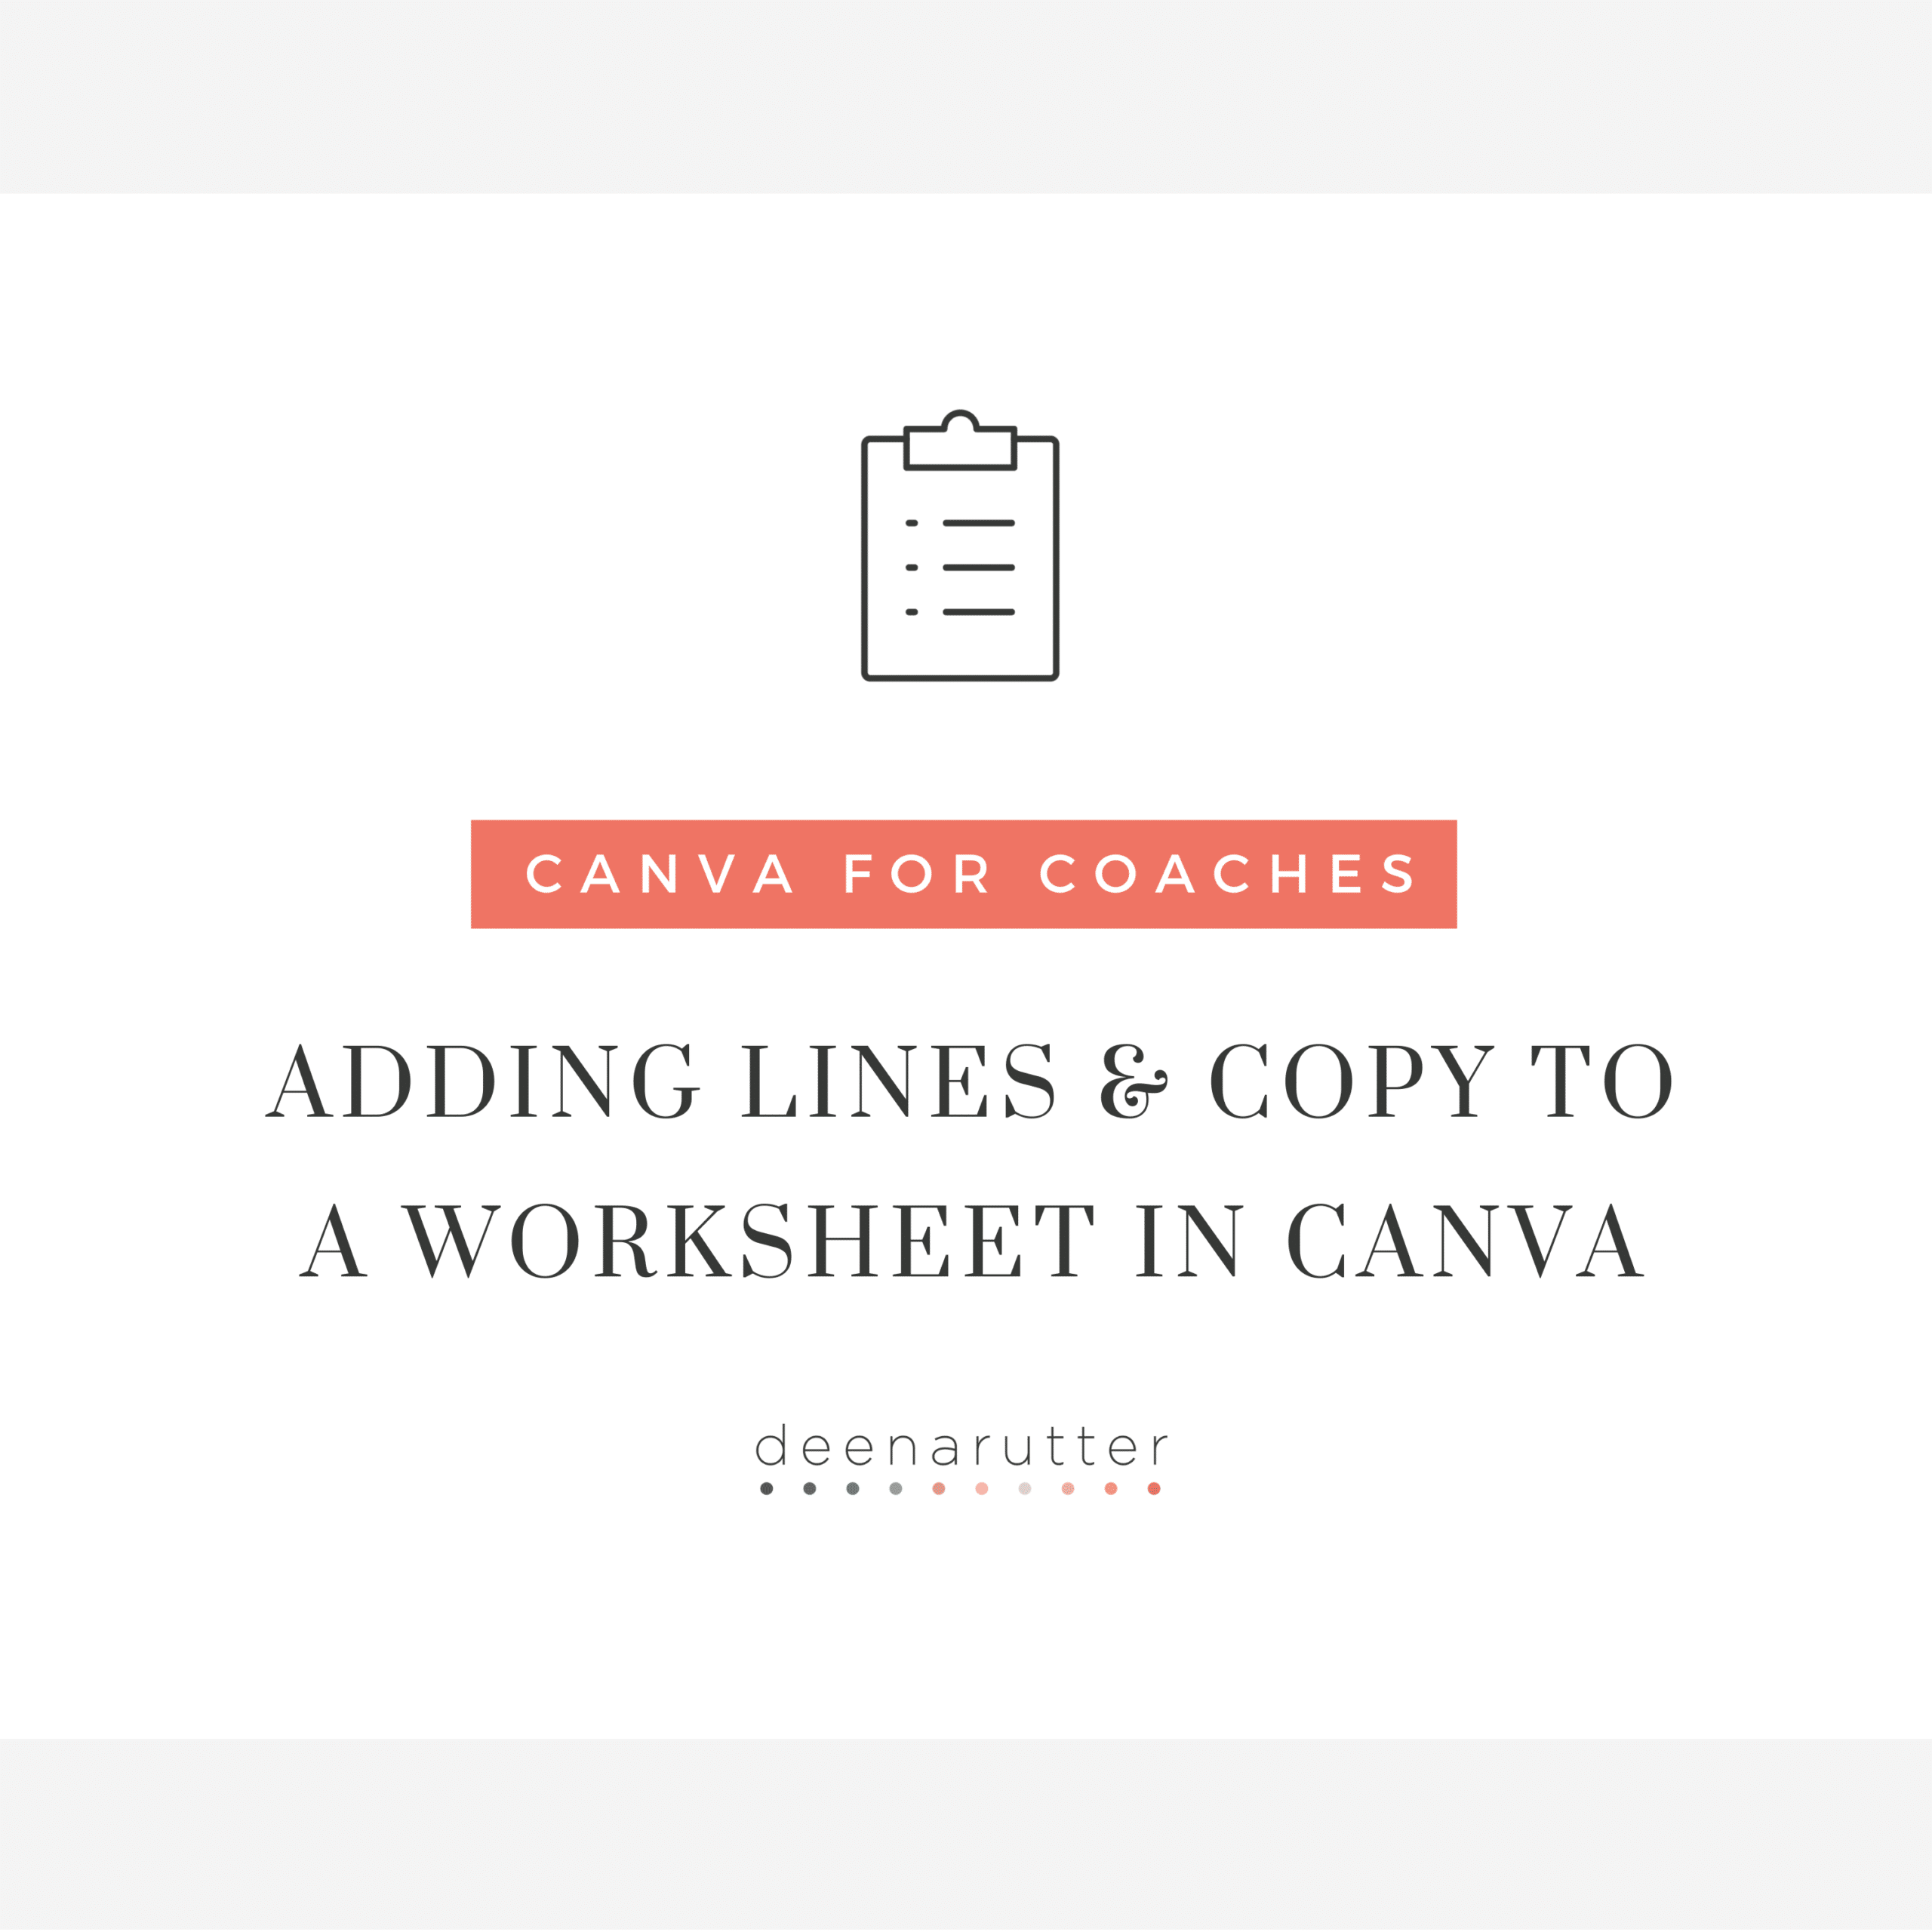 Adding Lines Amp Copy To A Worksheet In Canva